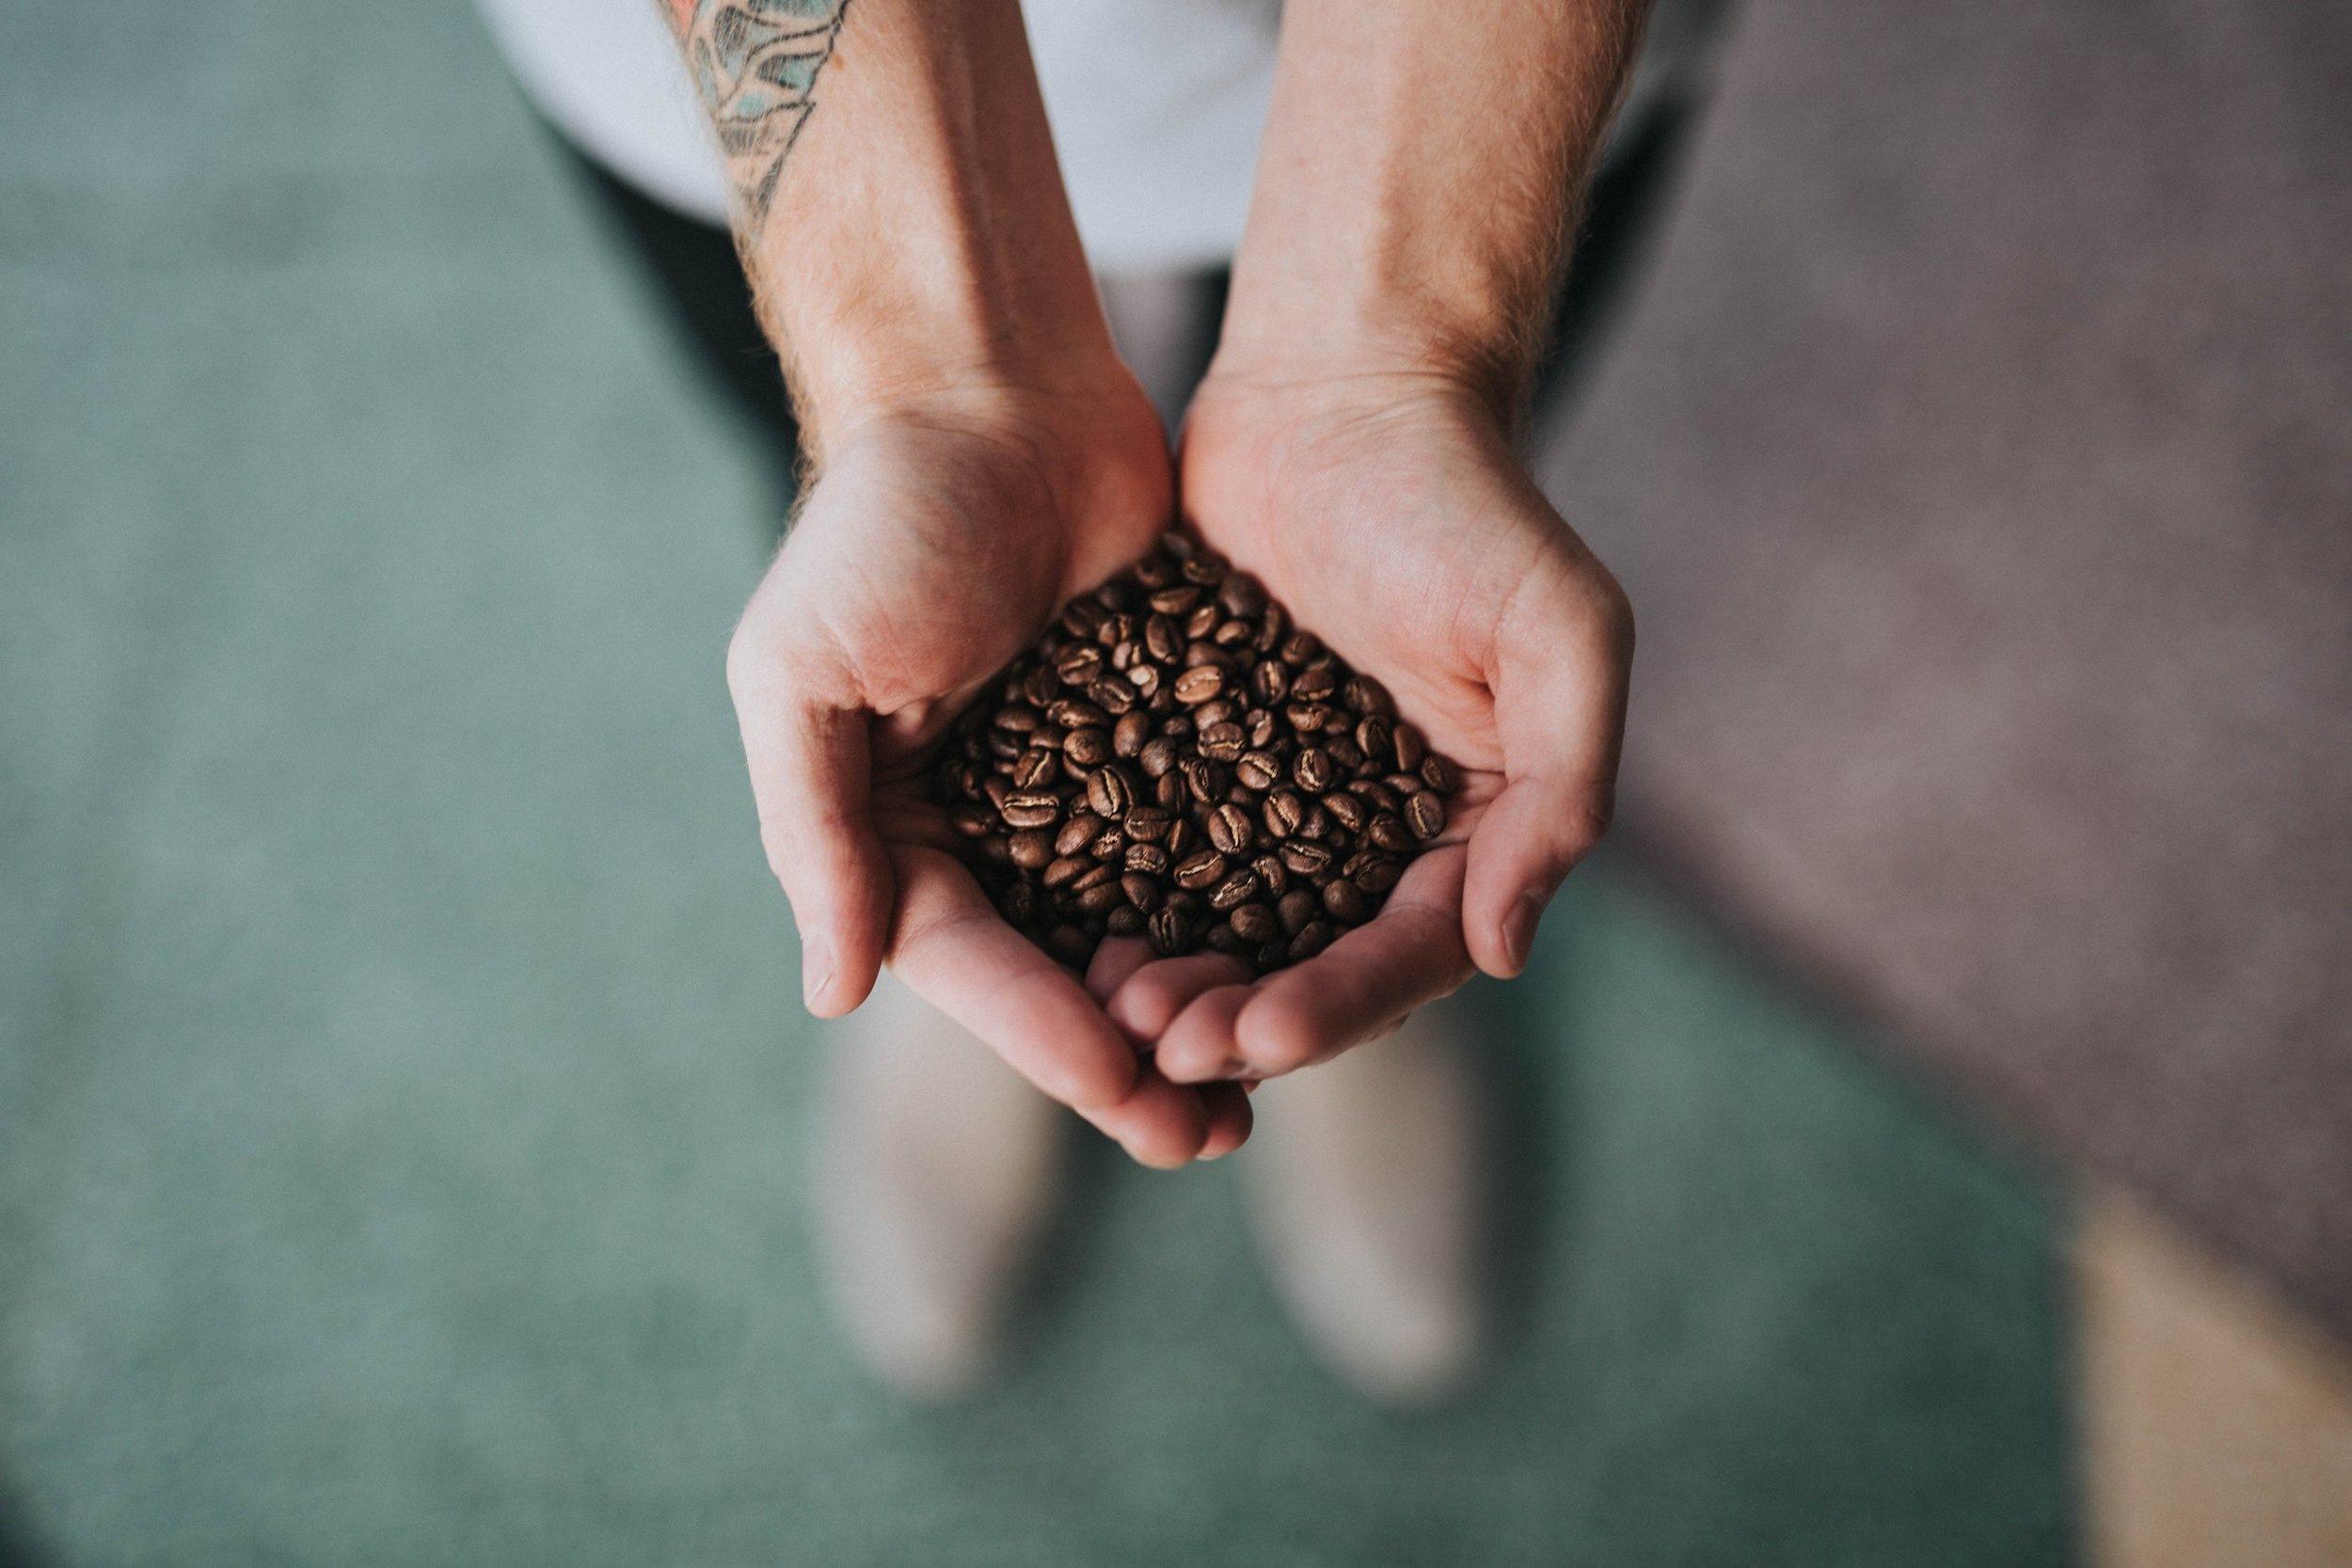 Puerto Rican Coffee - 80% of coffee farms were destroyed by Maria.You can support local coffee farmers by purchasing a bag of Puerto Rican coffee.Shop for coffee